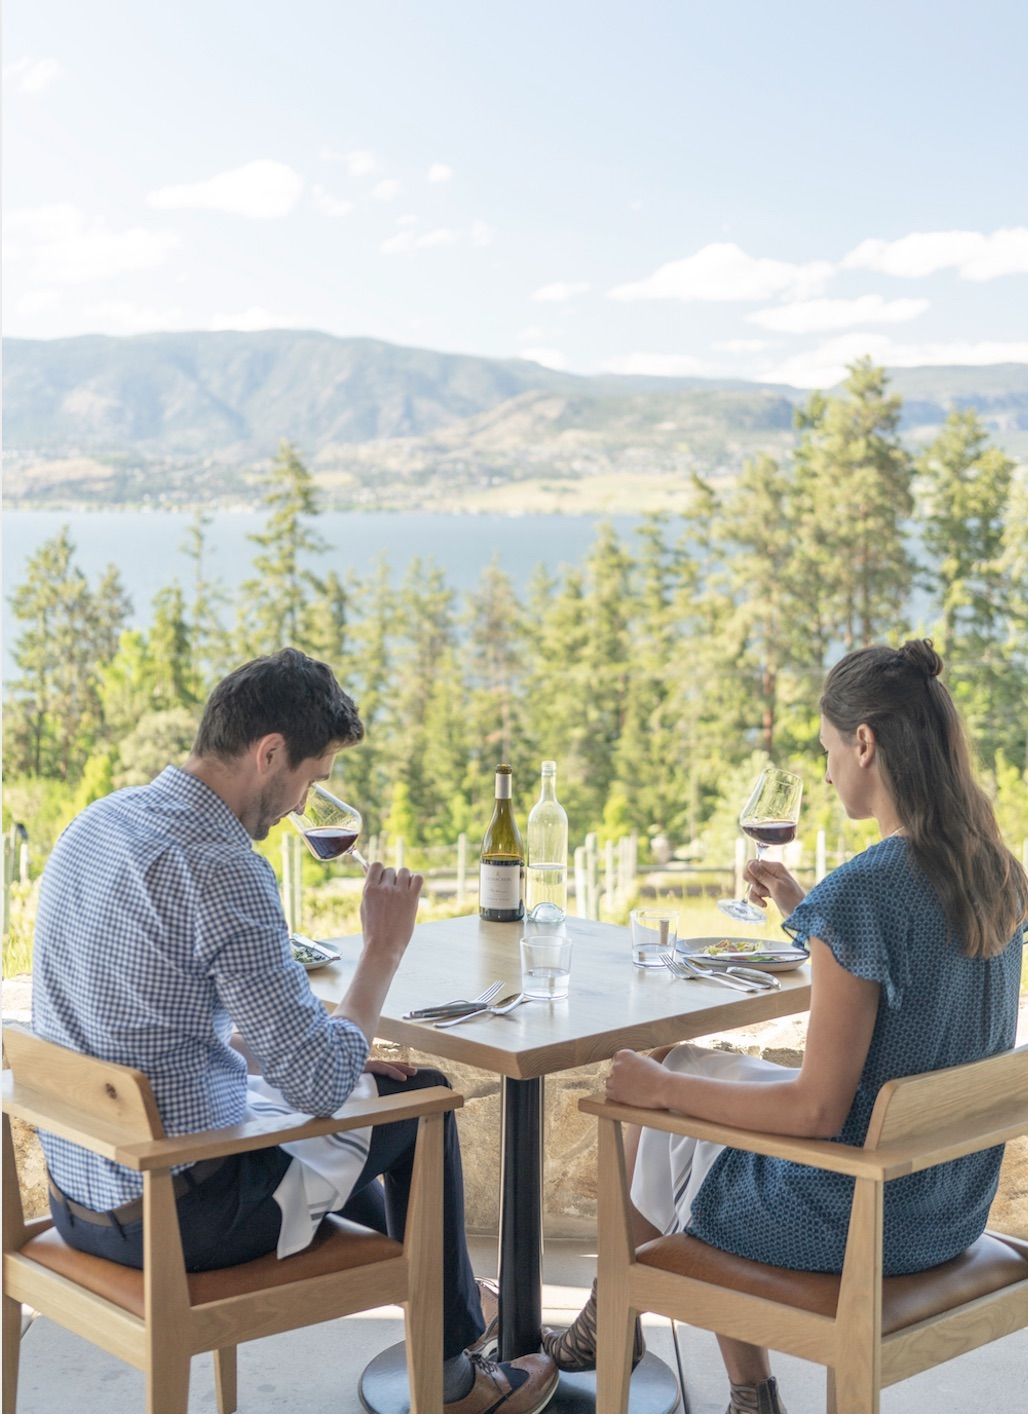 Mission Hill And Cedarcreek Introduce Culinary Experiences For Summer 2020 photo